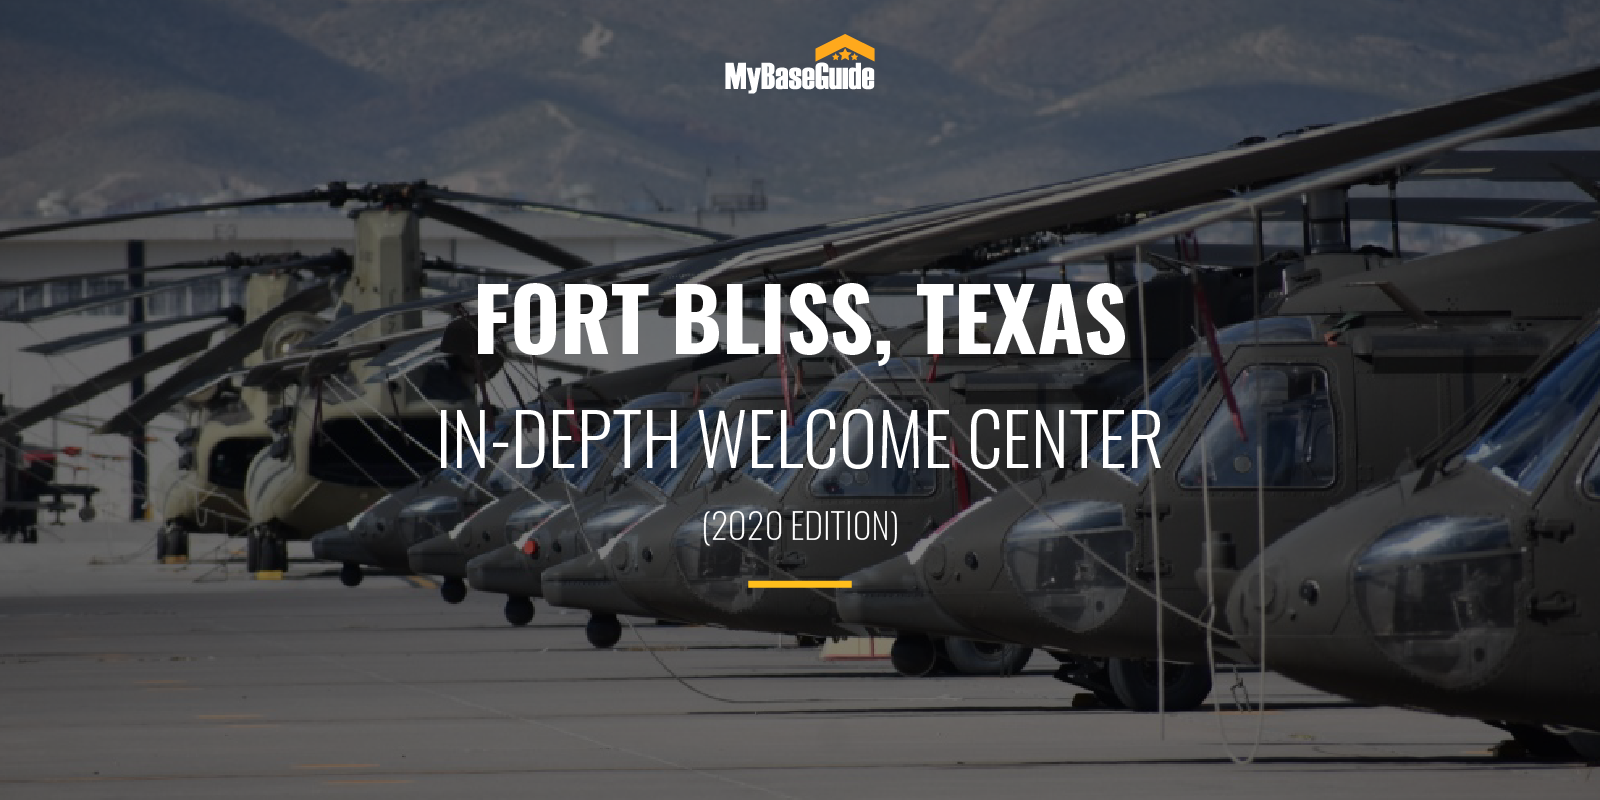 Fort Bliss Texas